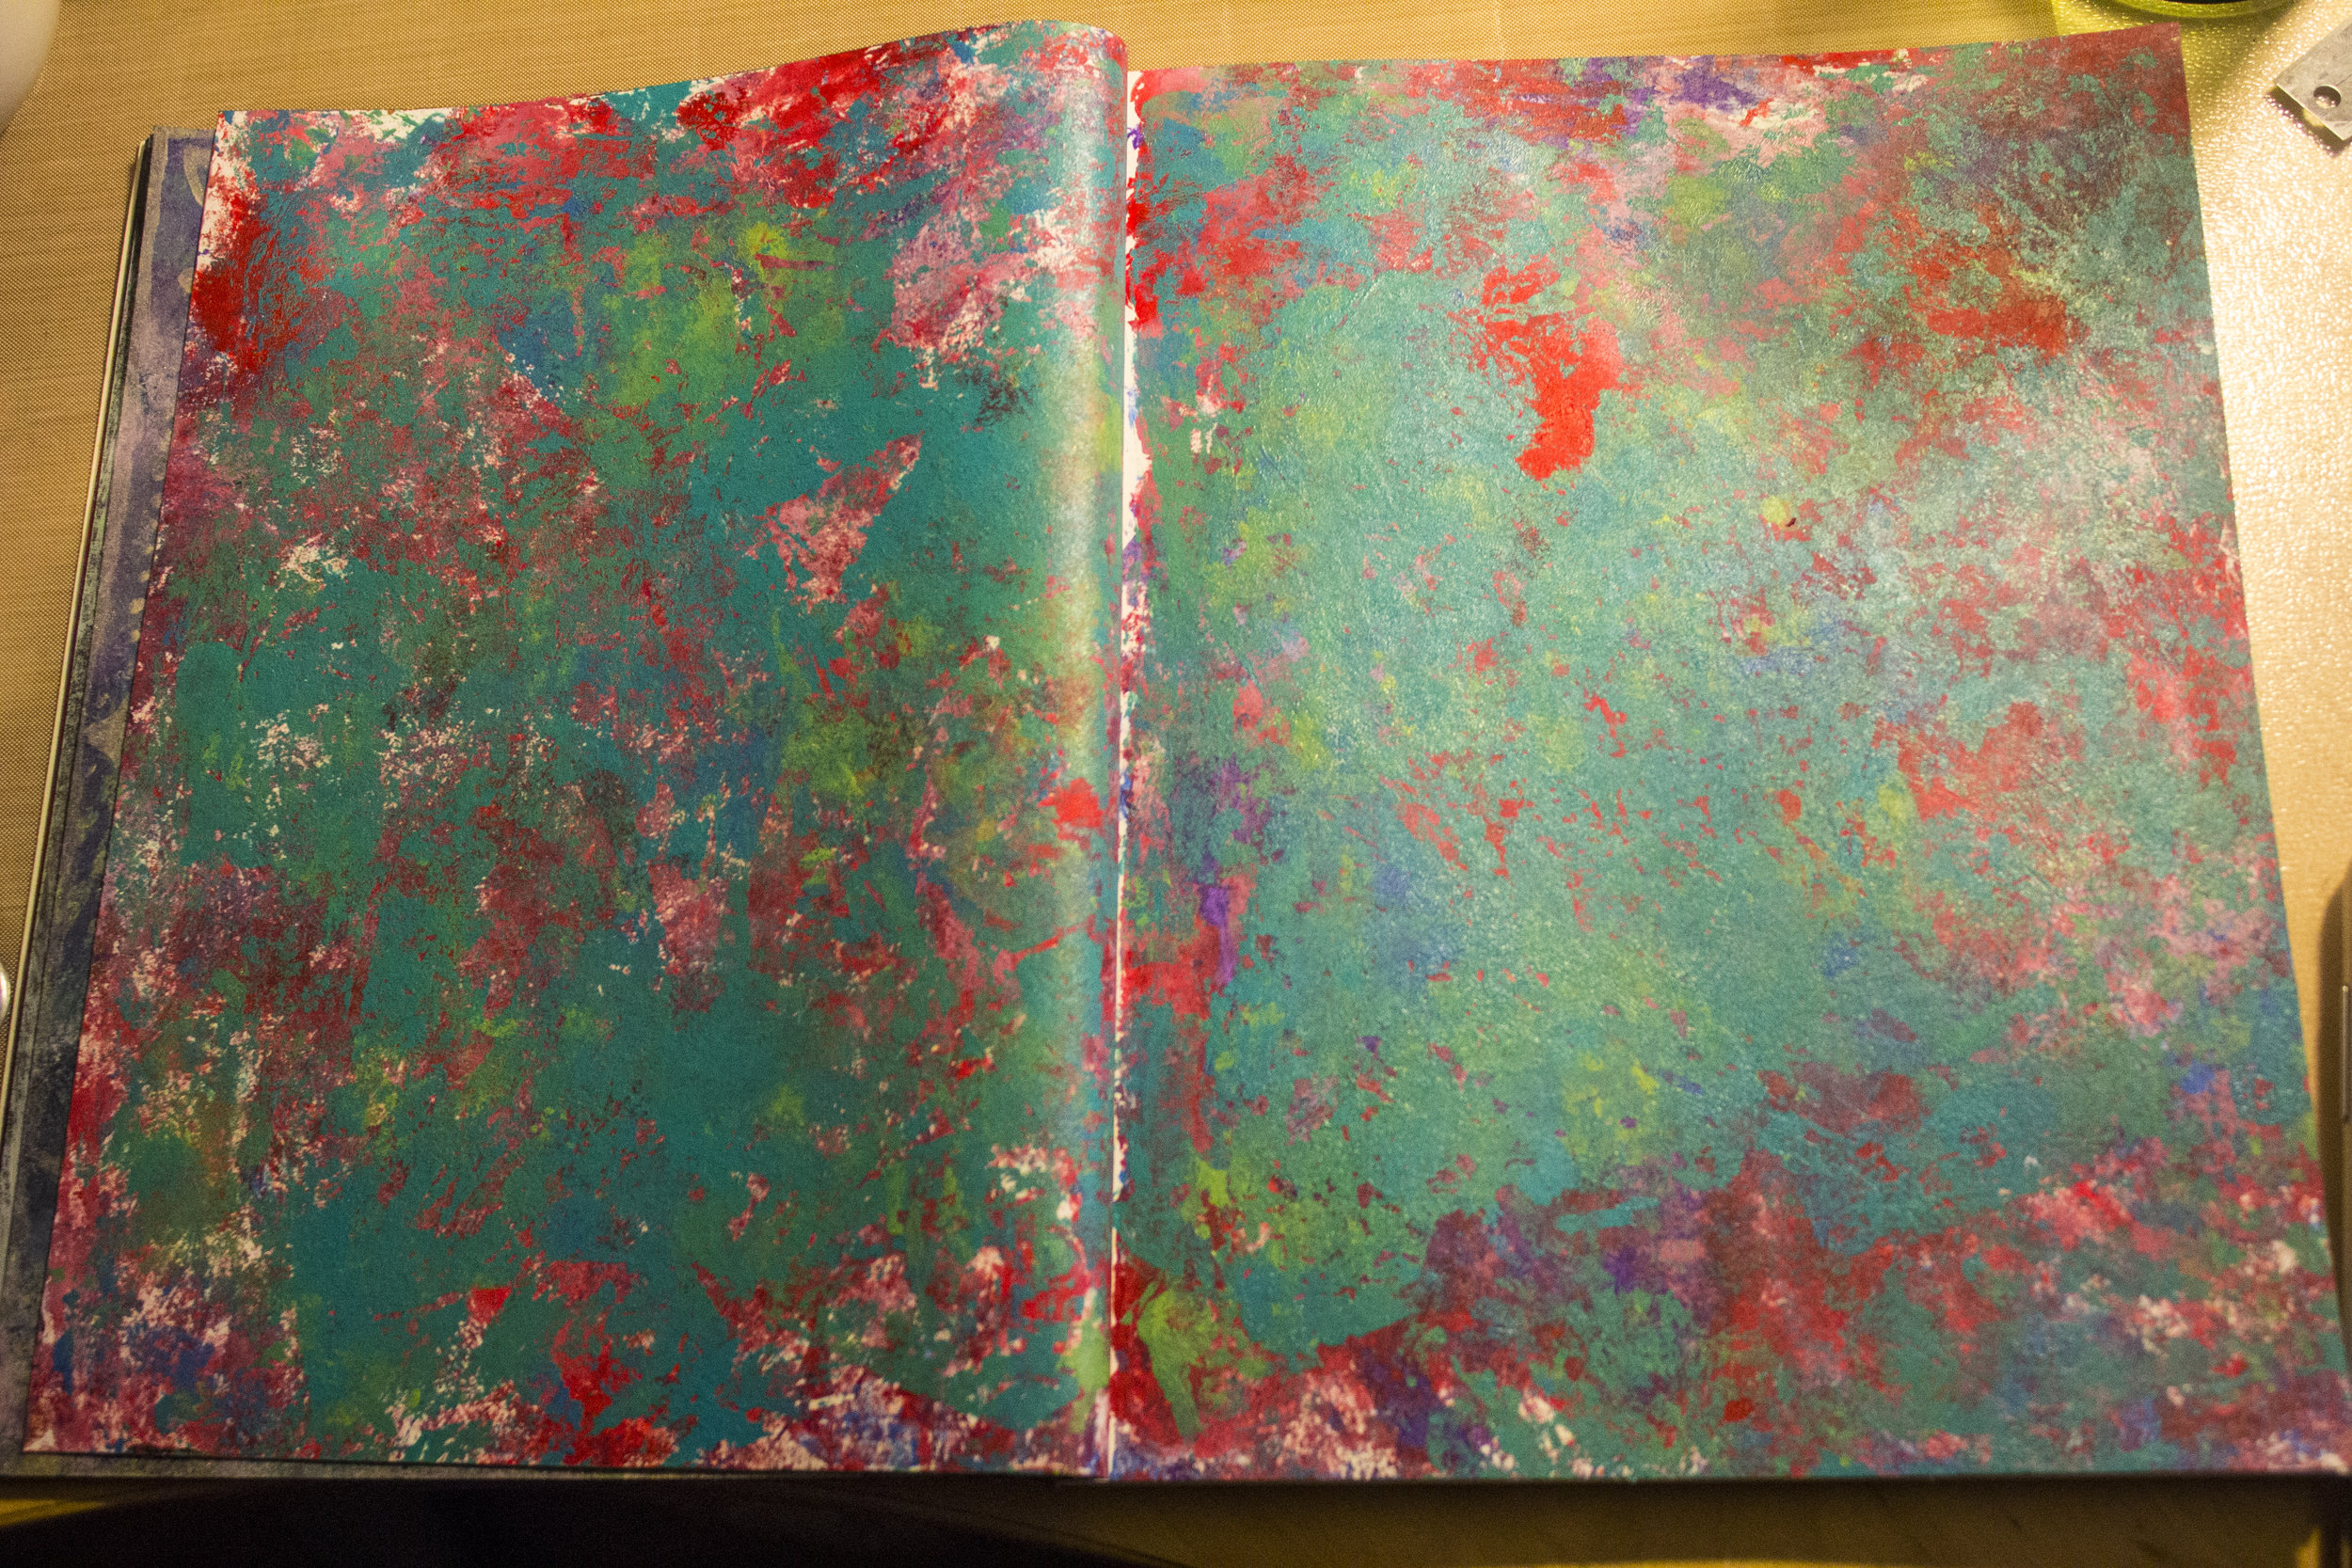 I first kept reapplying the cling wrap to cover the page, then after doing another page, used the cling wrap from that on top of this one. It really makes that red POP!